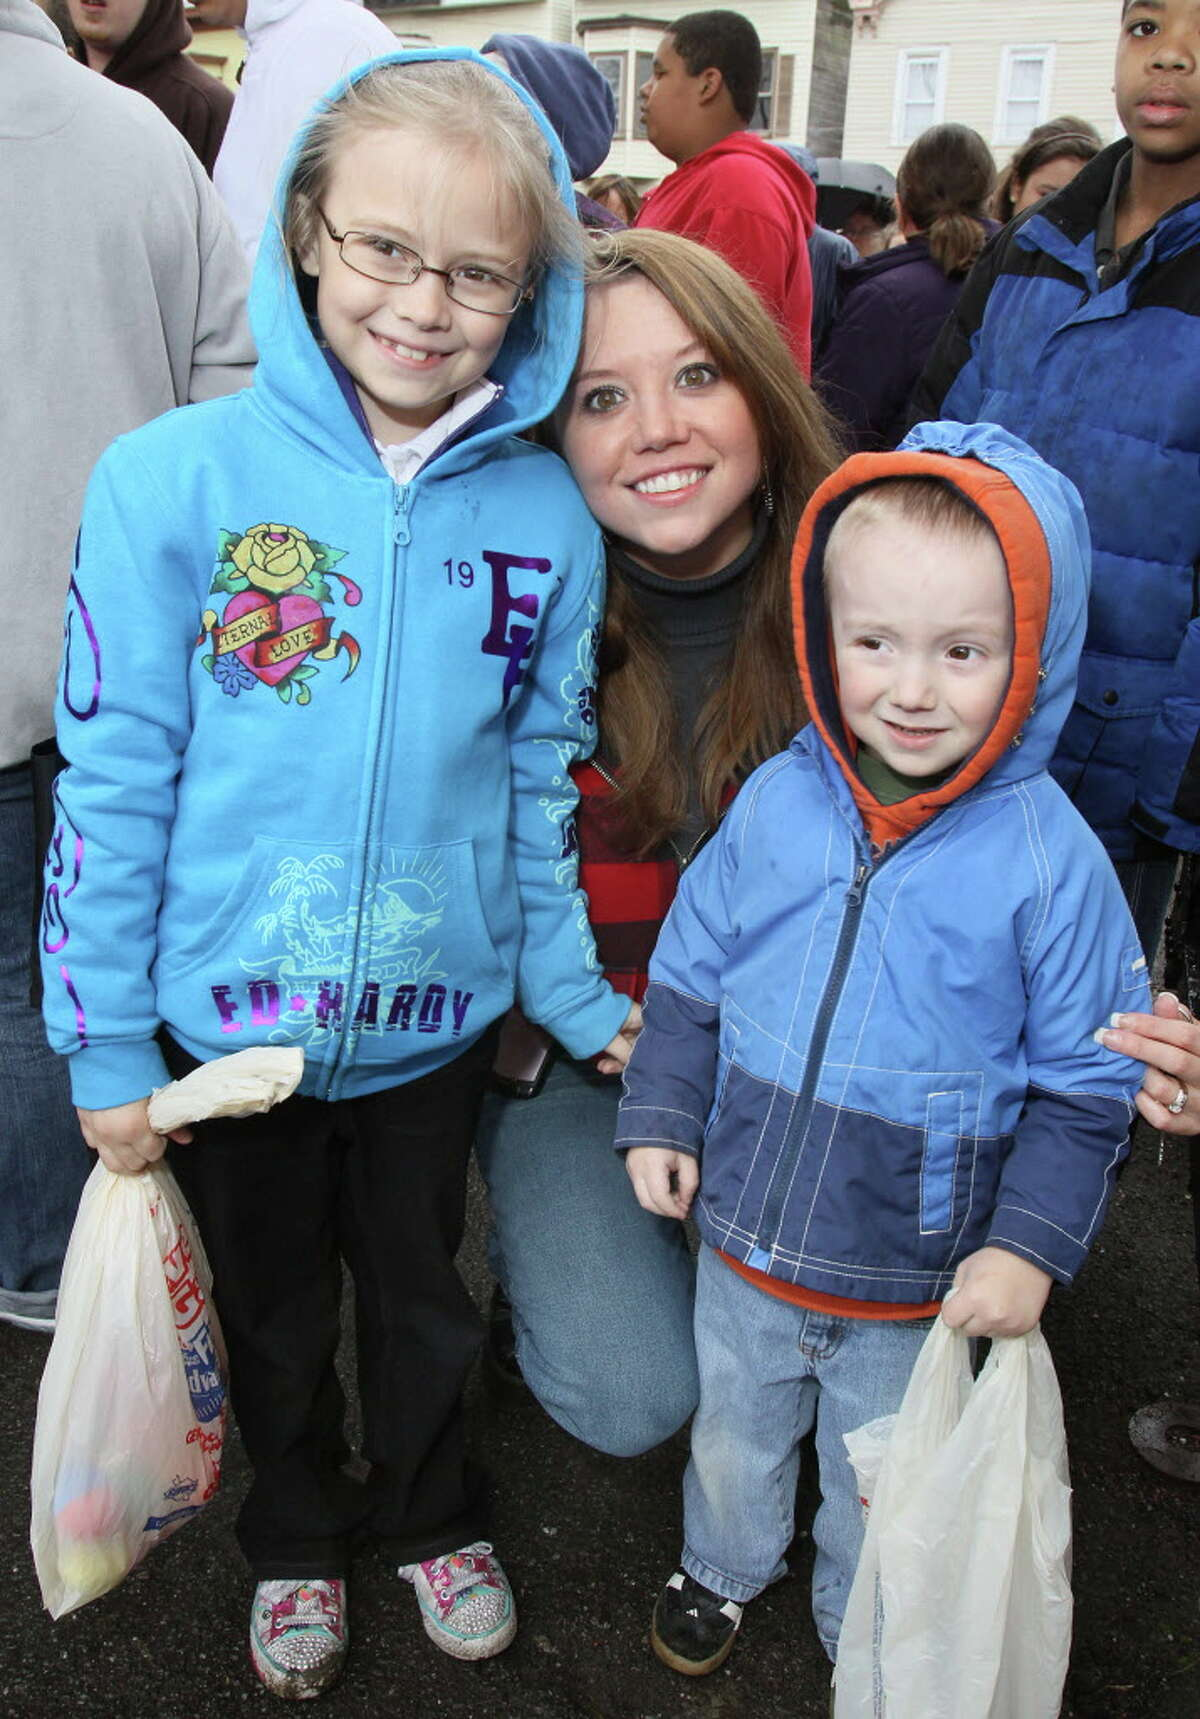 Albany, NY - April 23, 2011 - (Photo by Joe Putrock/Special to the Times Union) - Jessica Blain-Lewis(center) brought her children Hannah(left) and Owen(right) to the Anti-Gun Violence Egg Hunt.